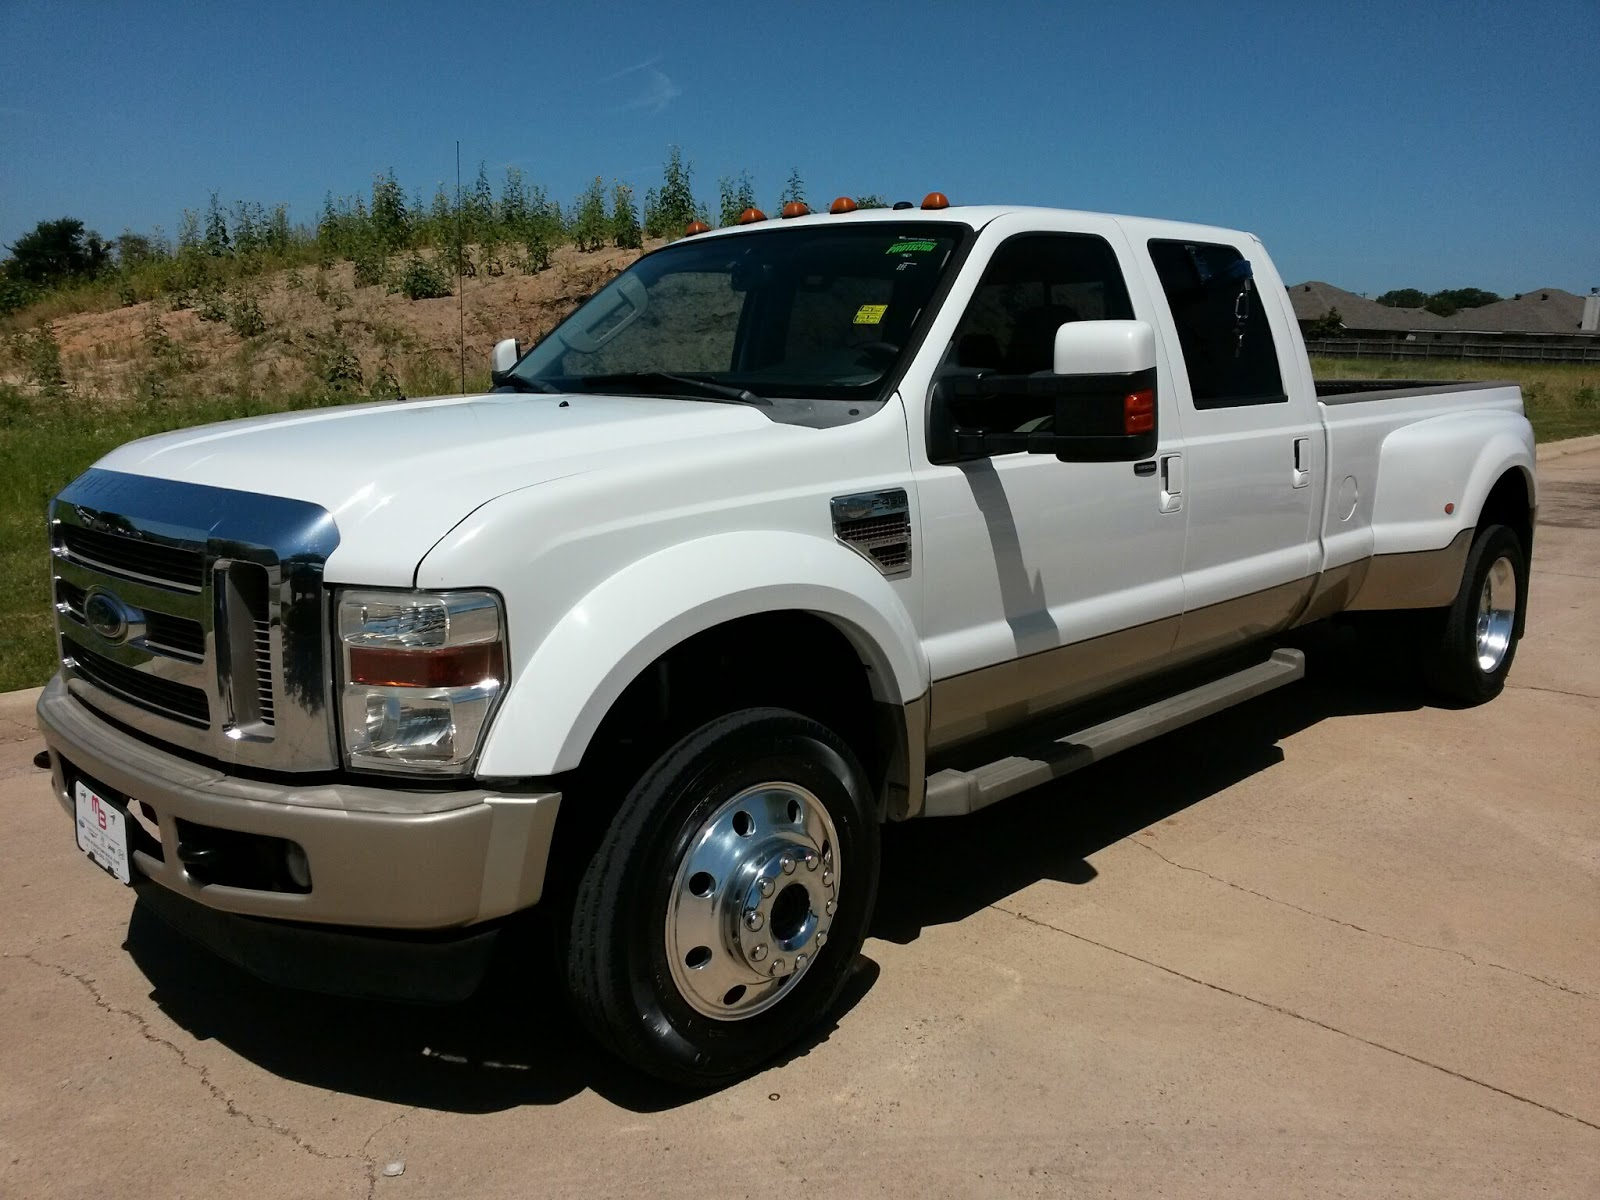 Tdy sales 26 991 2008 ford super duty f 450 drw lariat crew cab 4x4 king ranch